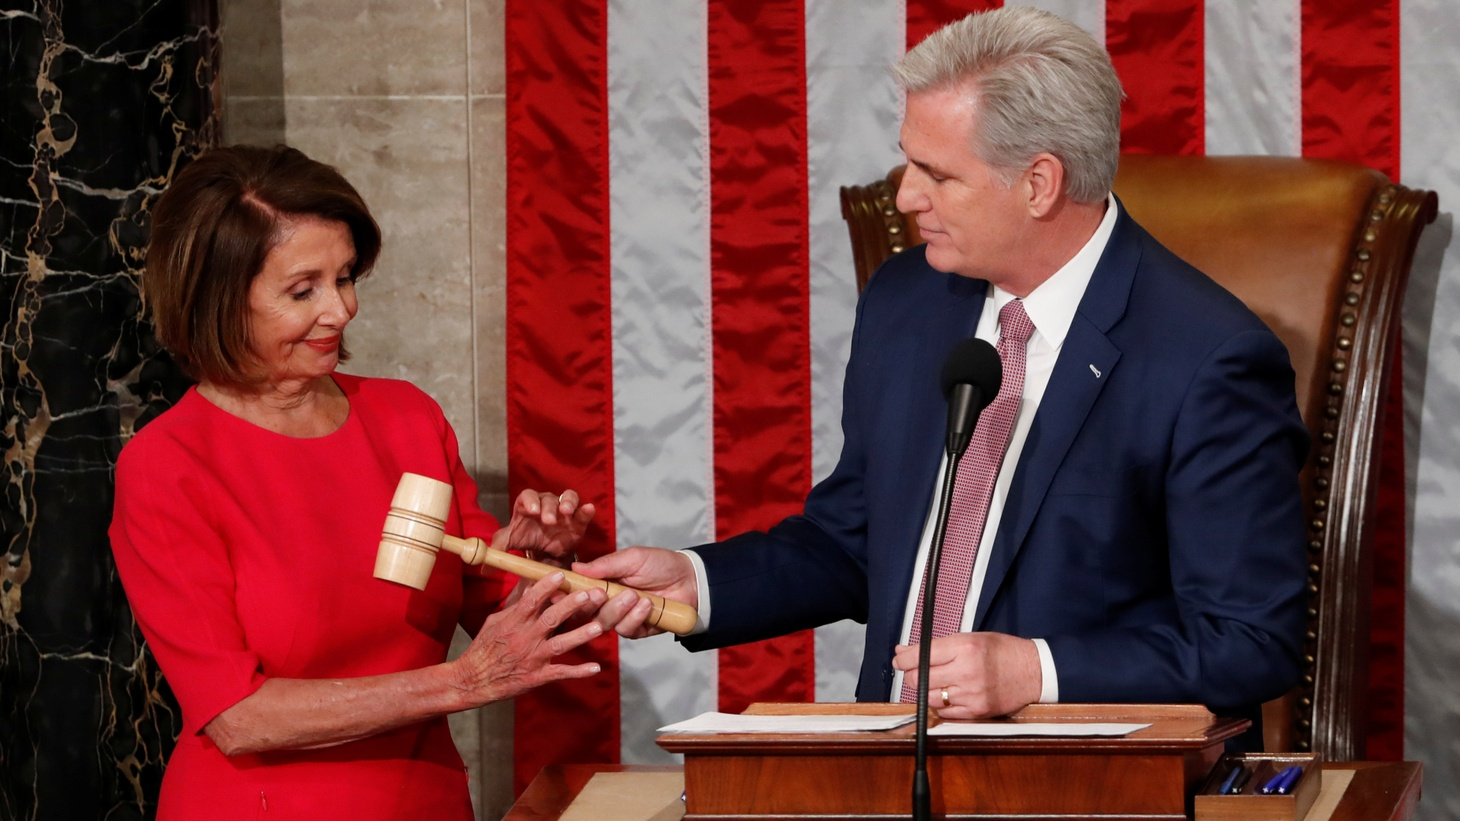 Nancy Pelosi (D-CA) is handed the gavel by House Republican Leader Kevin McCarthy (R-CA) after being elected as Speaker of the House during the start of the 116th Congress in the Capitol in Washington, U.S., January 3, 2019.